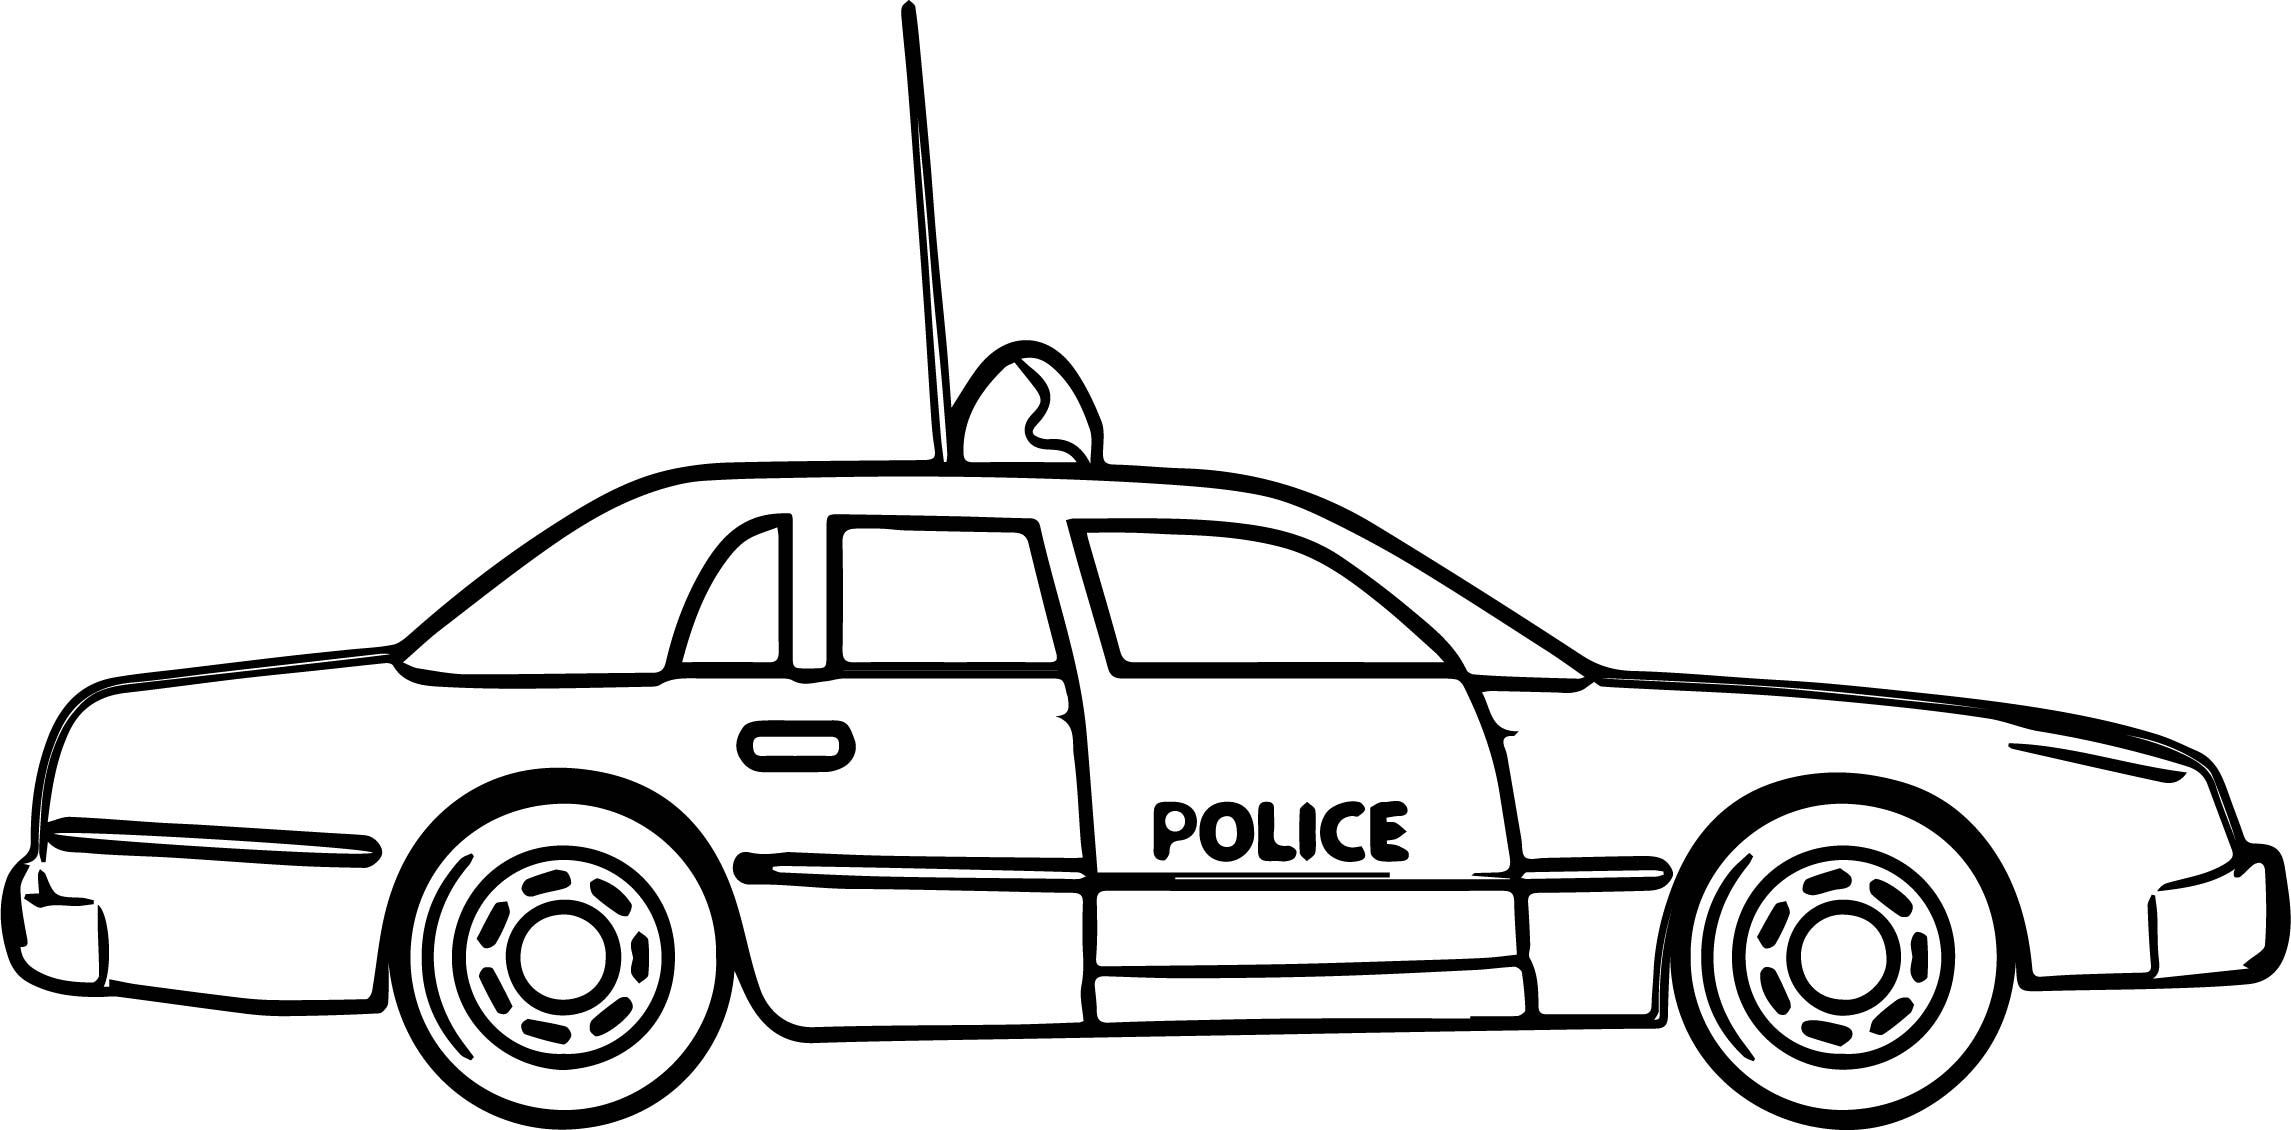 police car coloring pages - new police car coloring pages